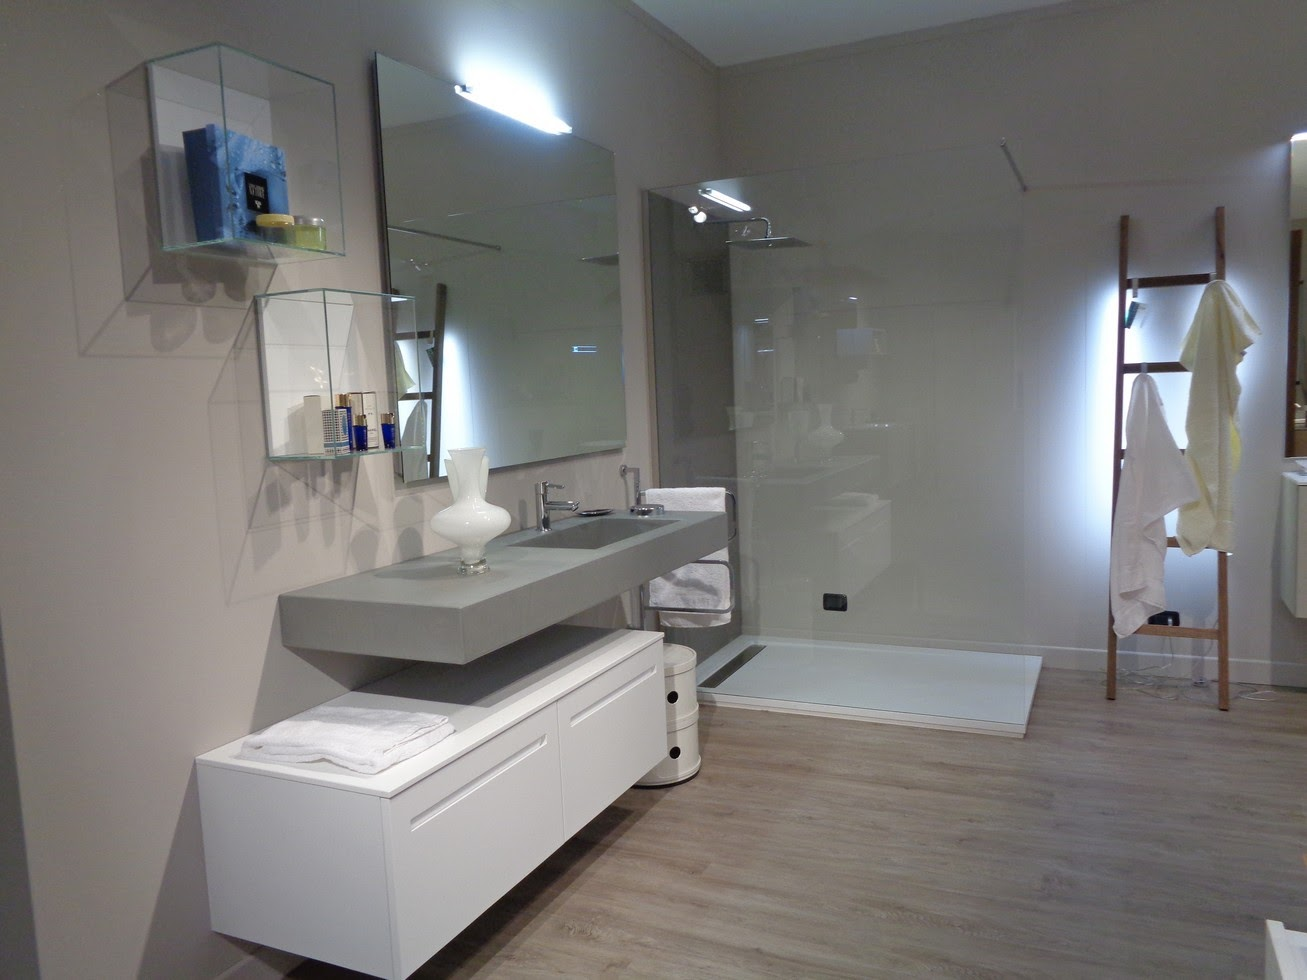 Resina In Bagno. Resina Bagno With Resina In Bagno. Great Bagno ...